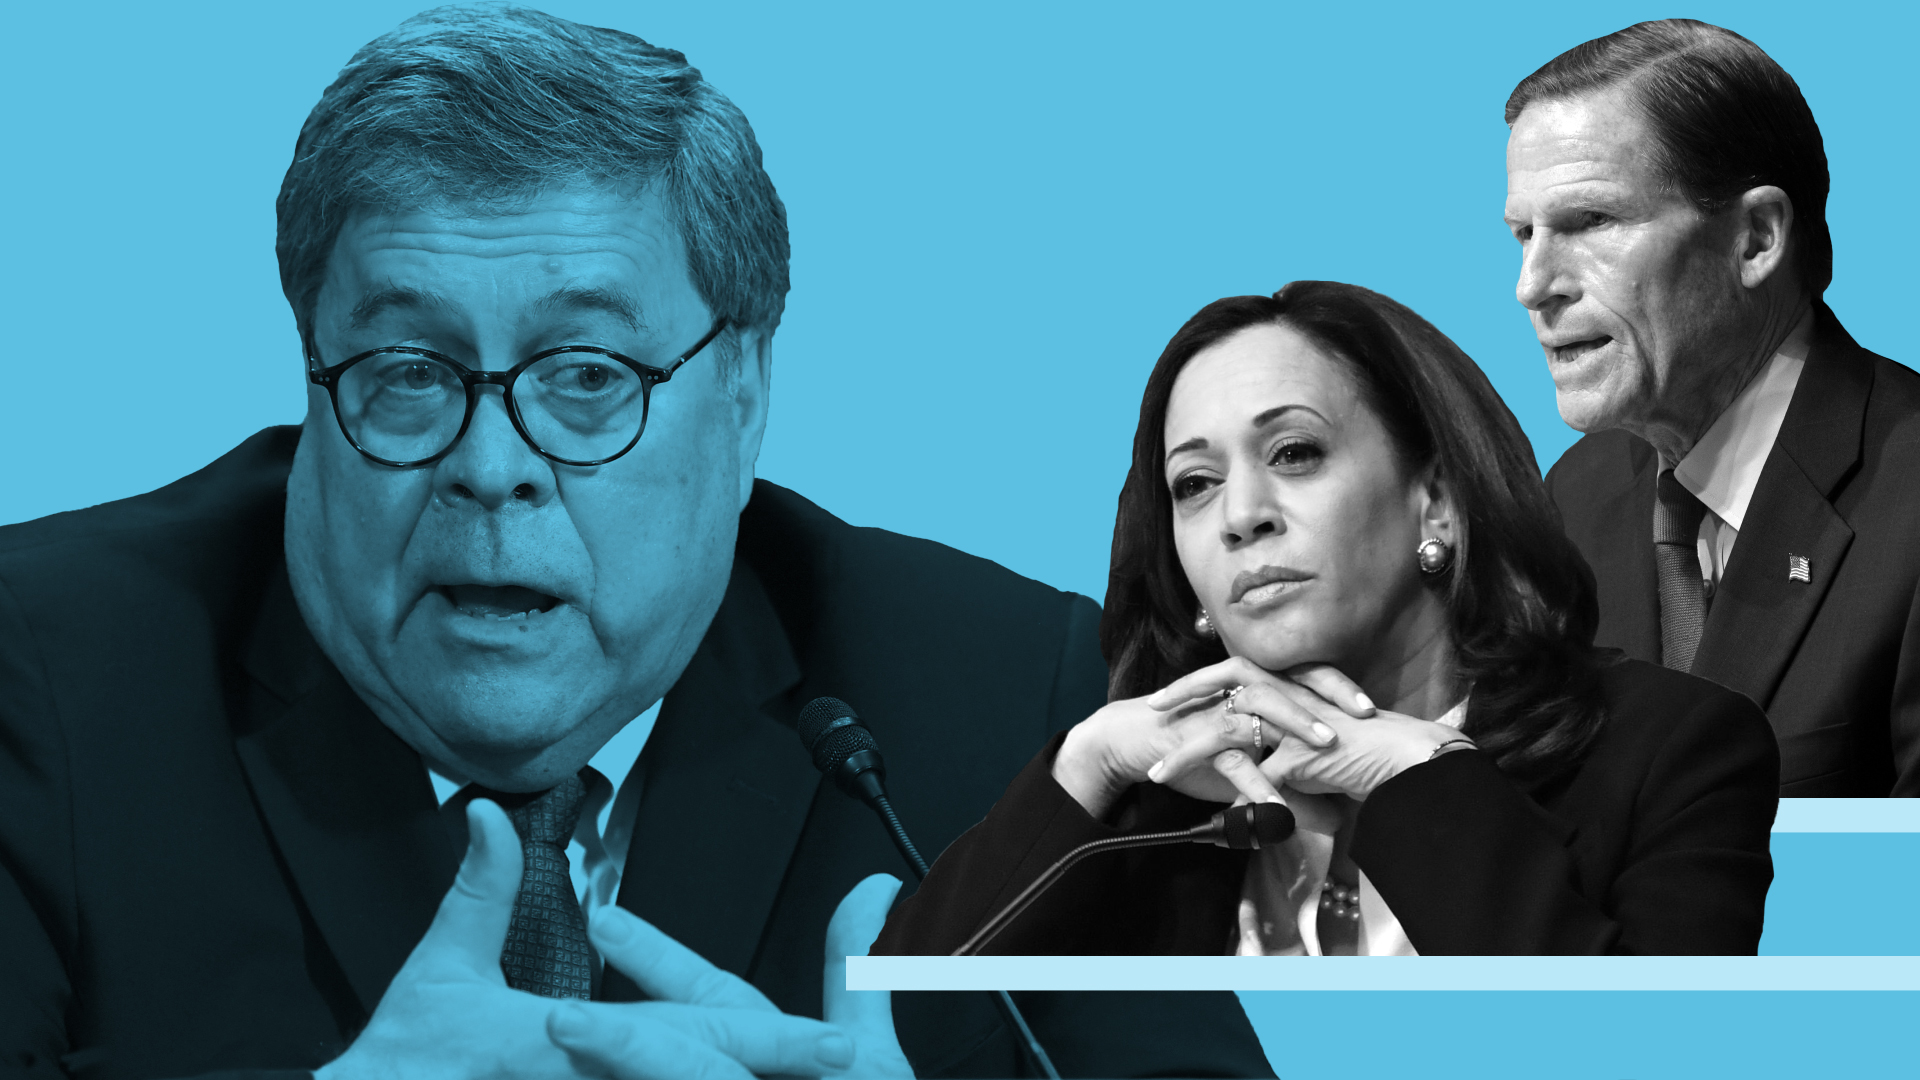 William Barr and his horrible hearing